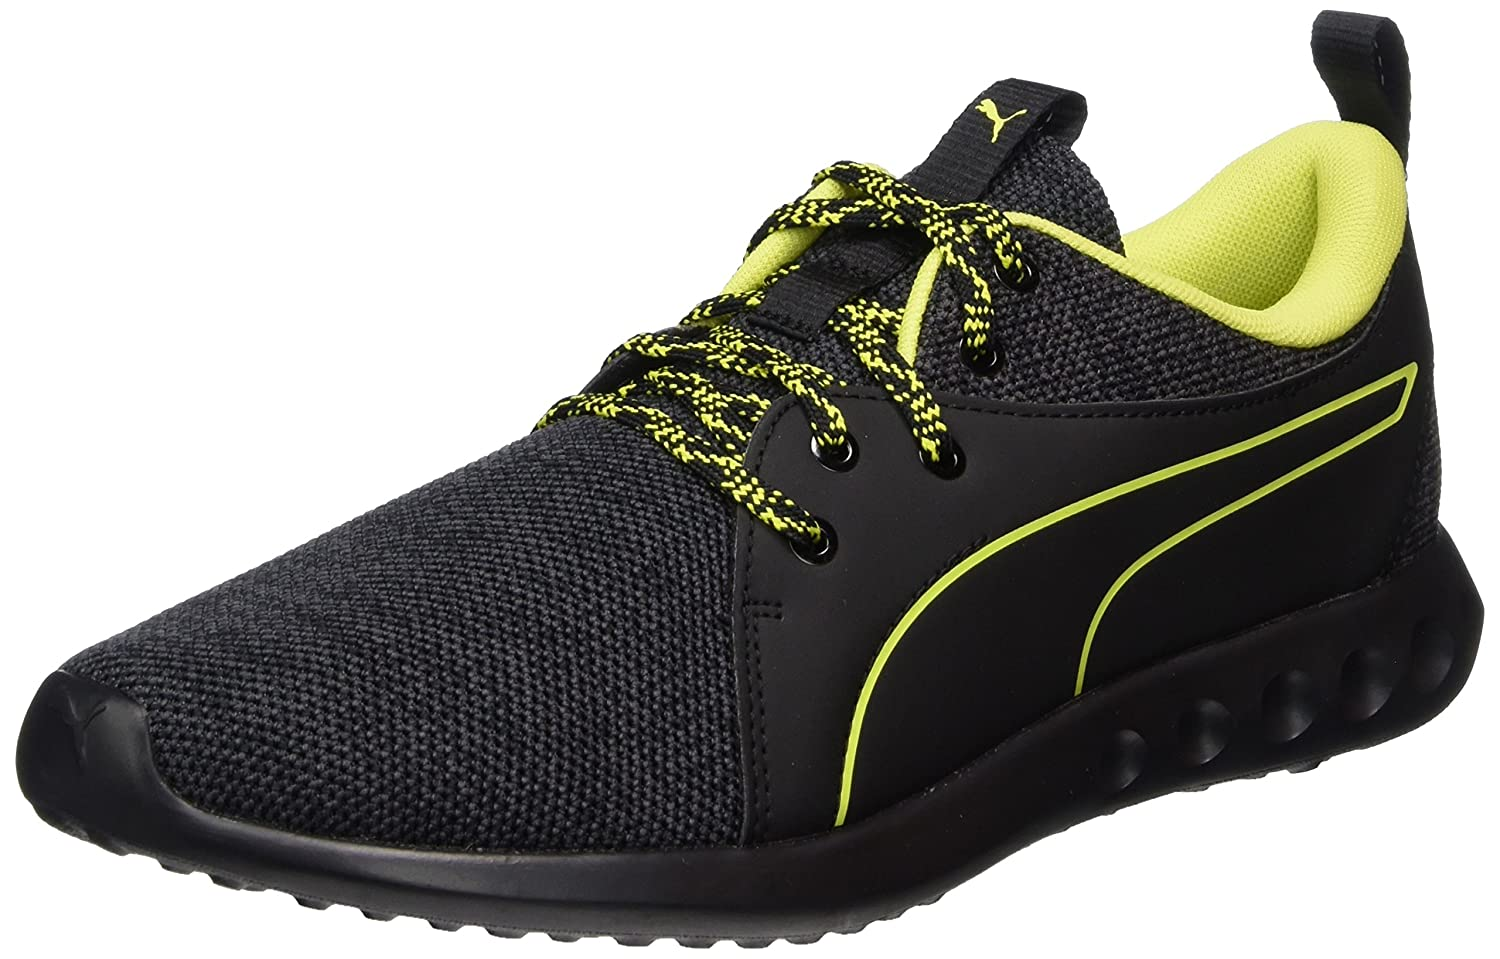 f0d3bc237b4 Puma Men s Carson 2 Terrain Black-Quiet Shade-Nrgy Yellow Running Shoes - 8  UK India (42 EU)  Buy Online at Low Prices in India - Amazon.in